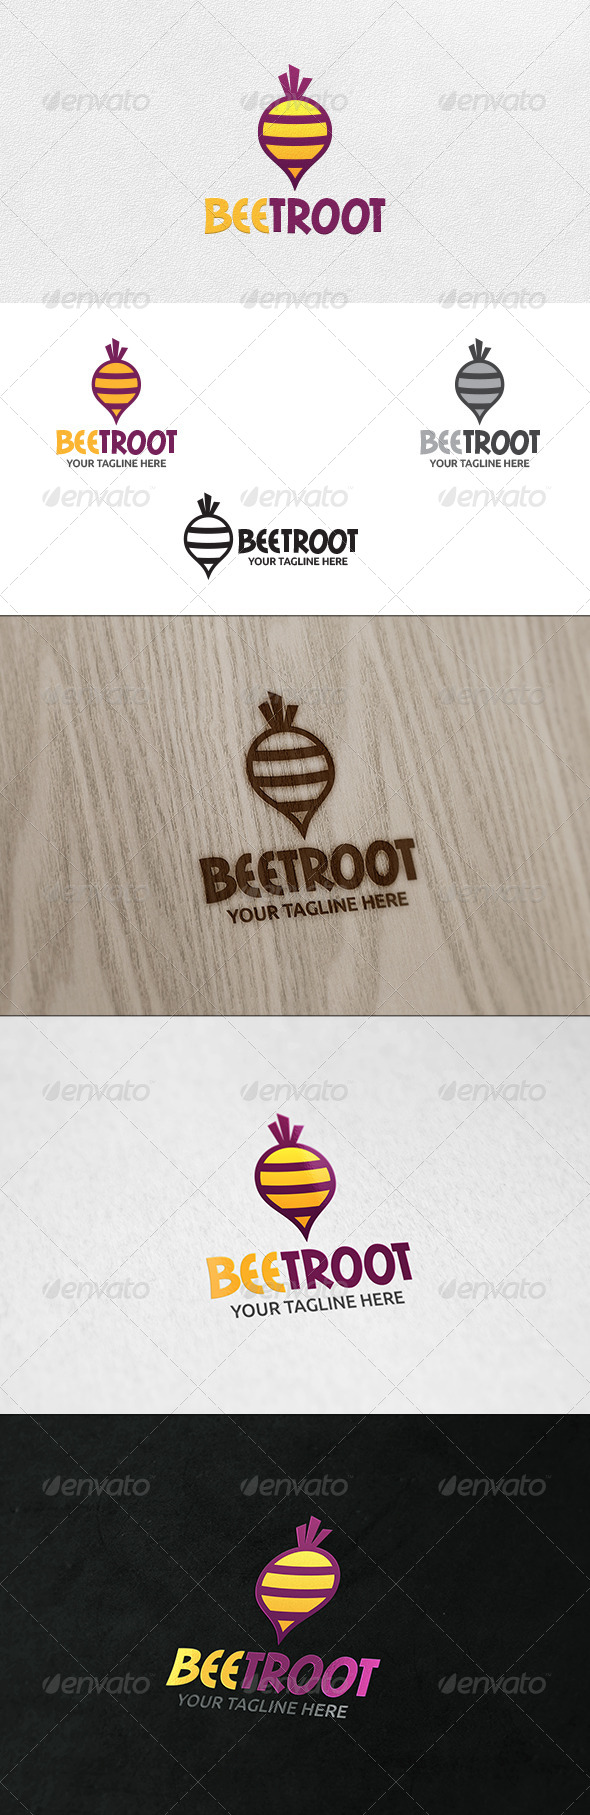 GraphicRiver Beetroot Logo Template 6493780